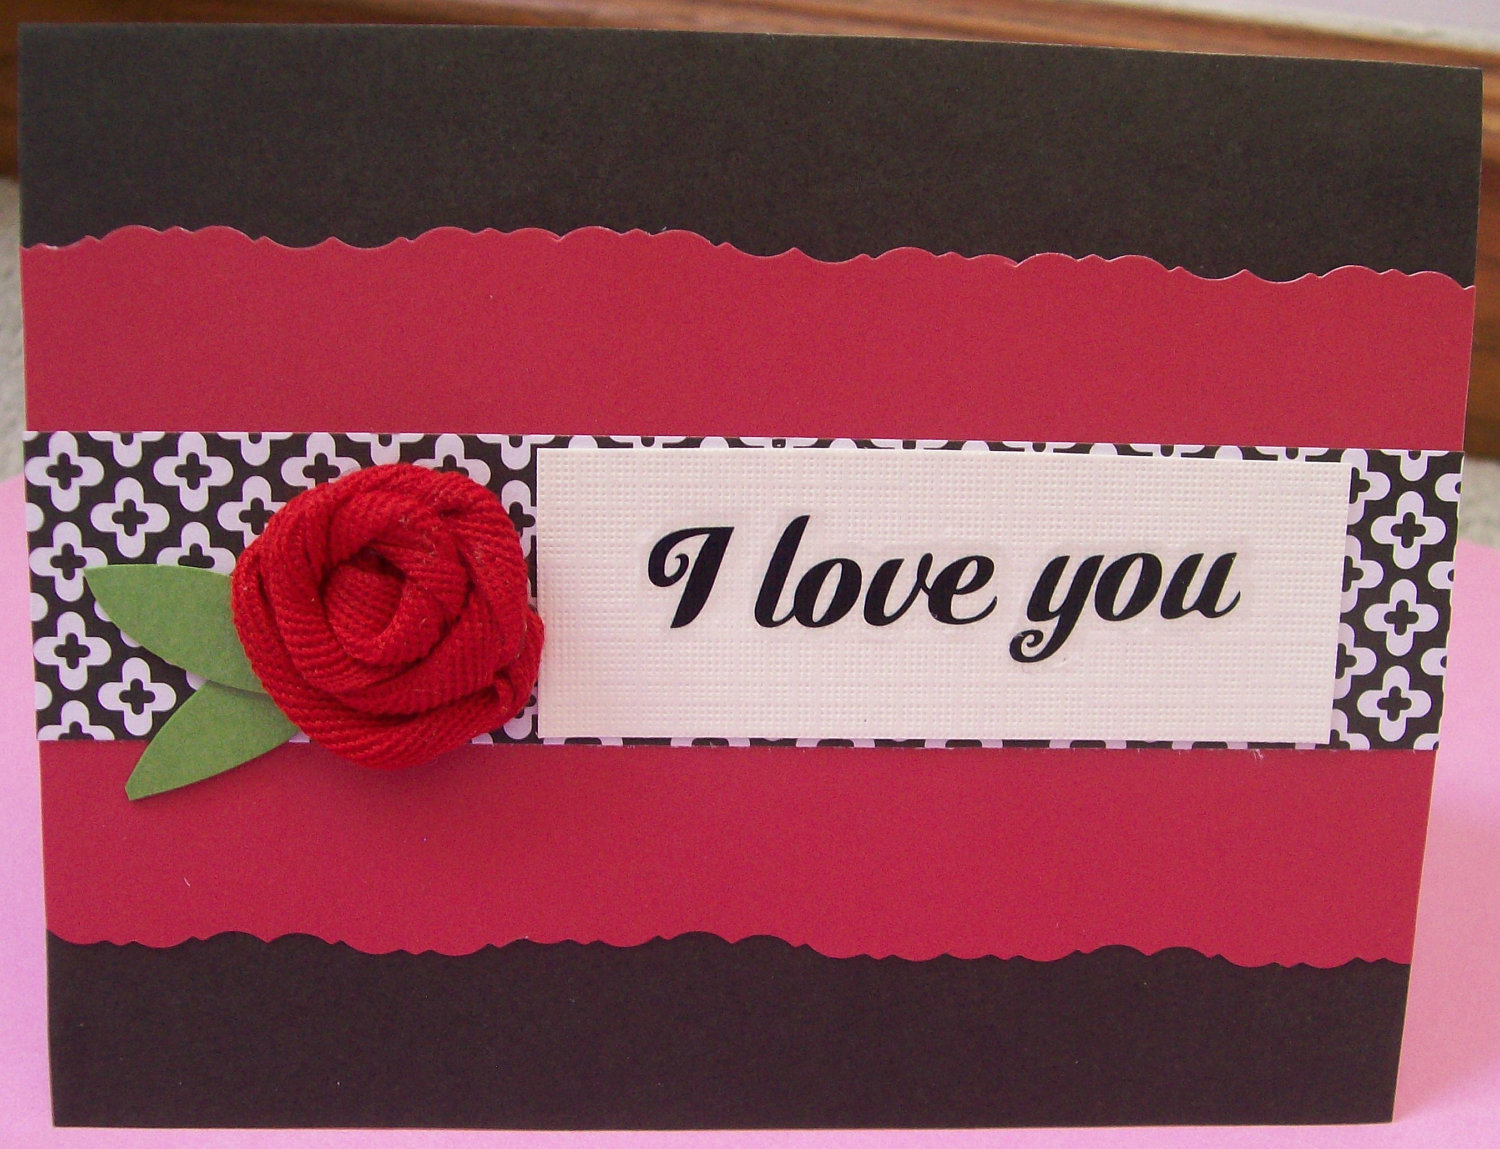 I Love You Quotes Girlfriend: I Love You Quotes For Girlfriend. QuotesGram